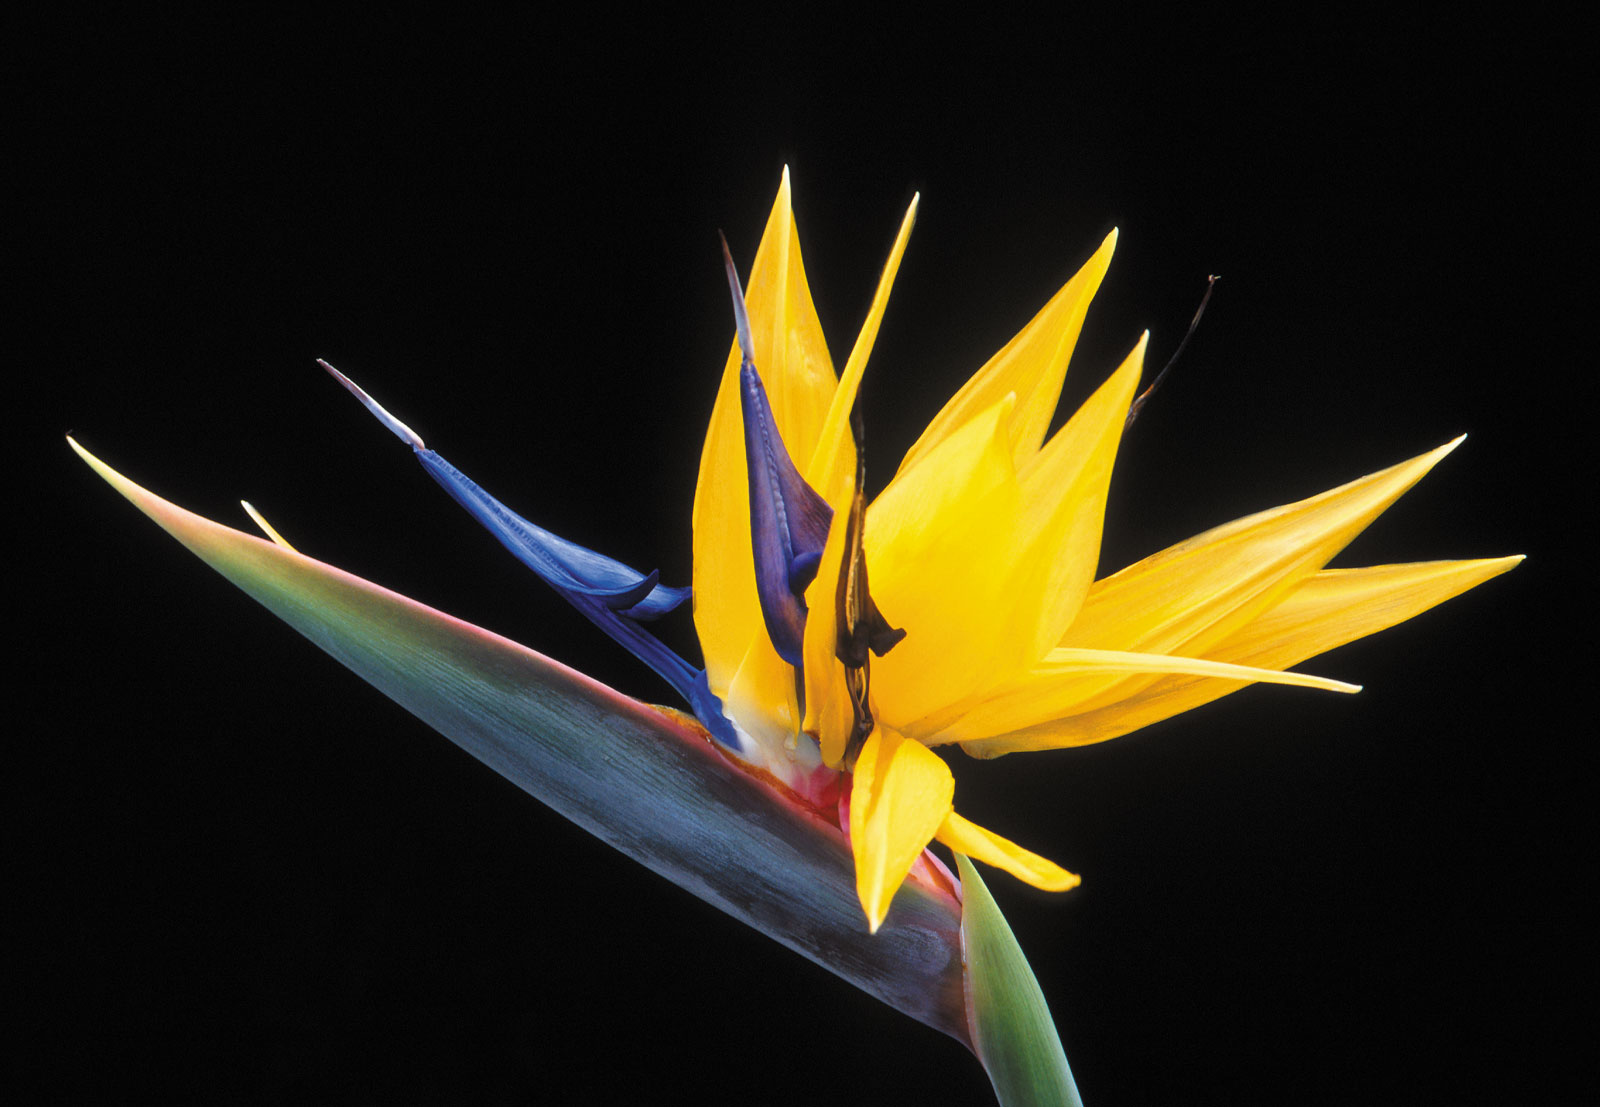 flowers for flower lovers.: Bird of paradise flower photos.